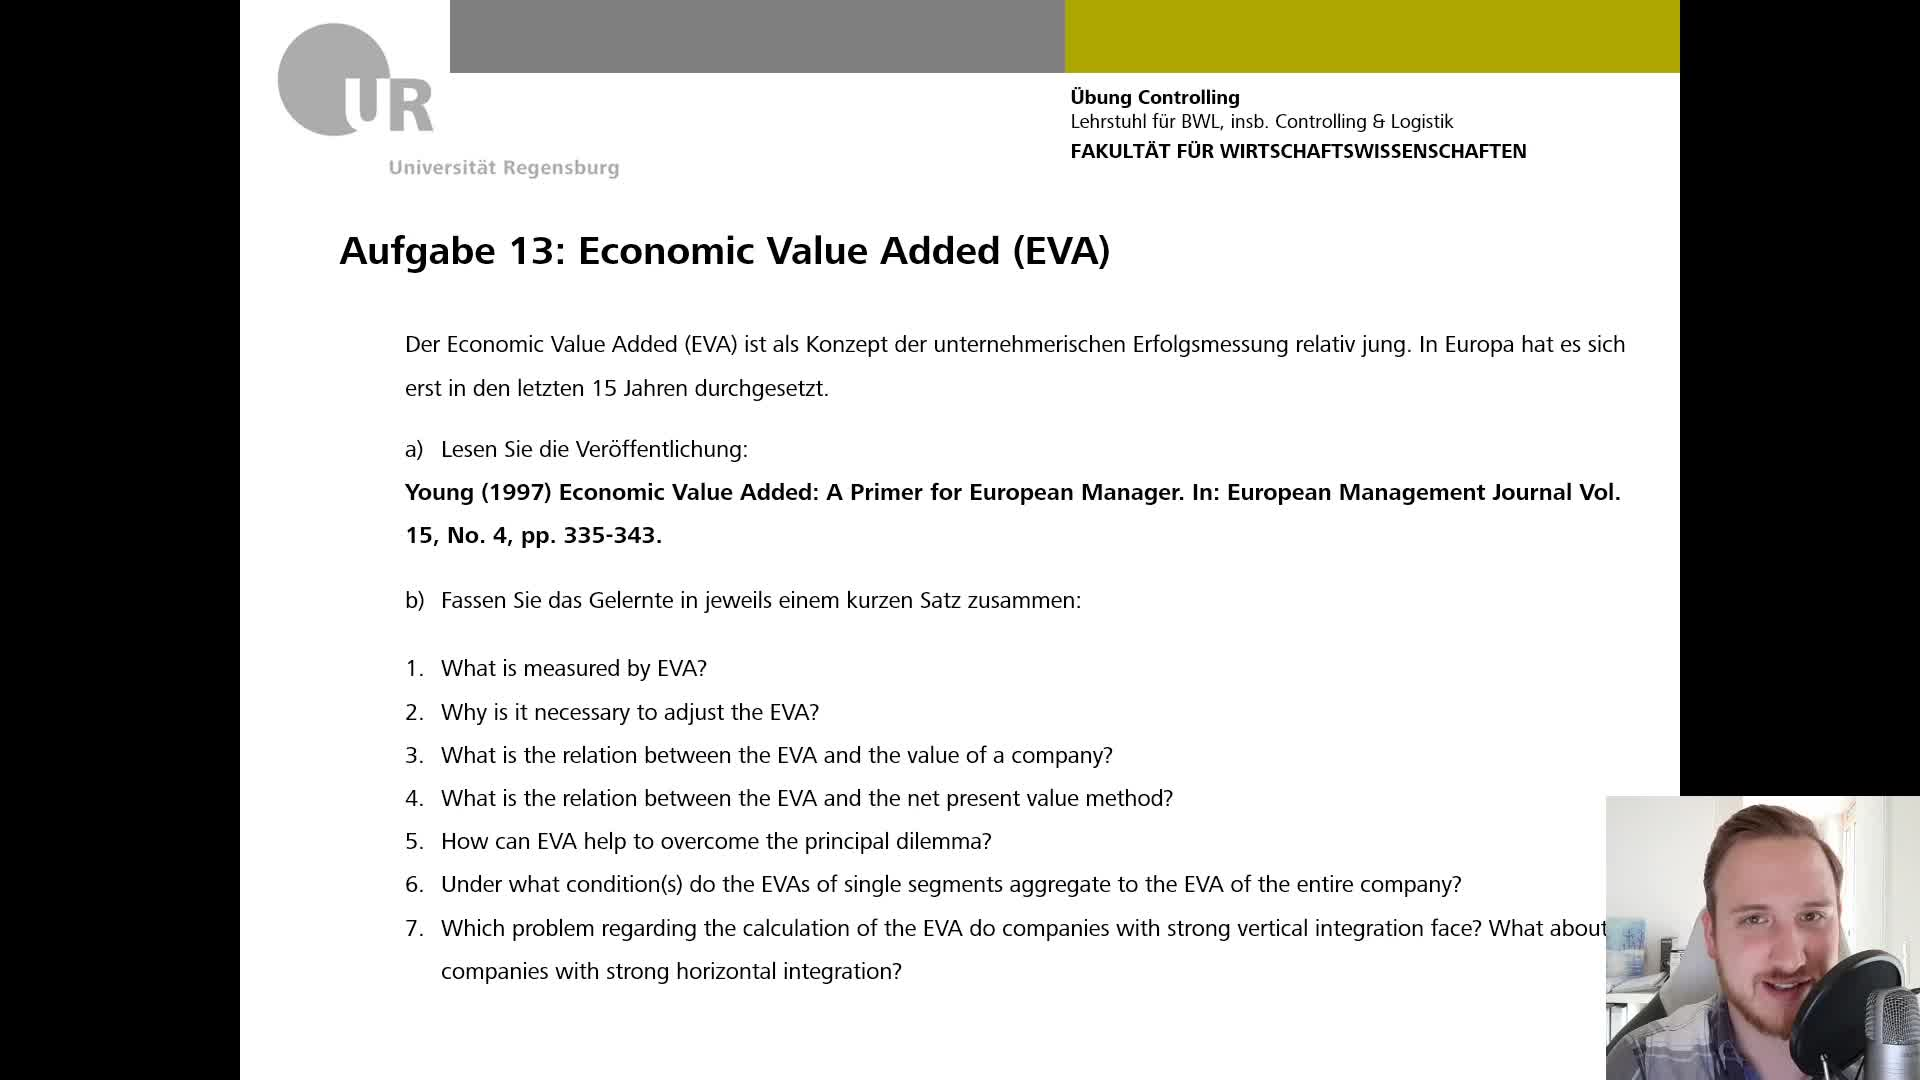 CO Übung VI - Aufgabe 13: Economic Value Added (EVA)